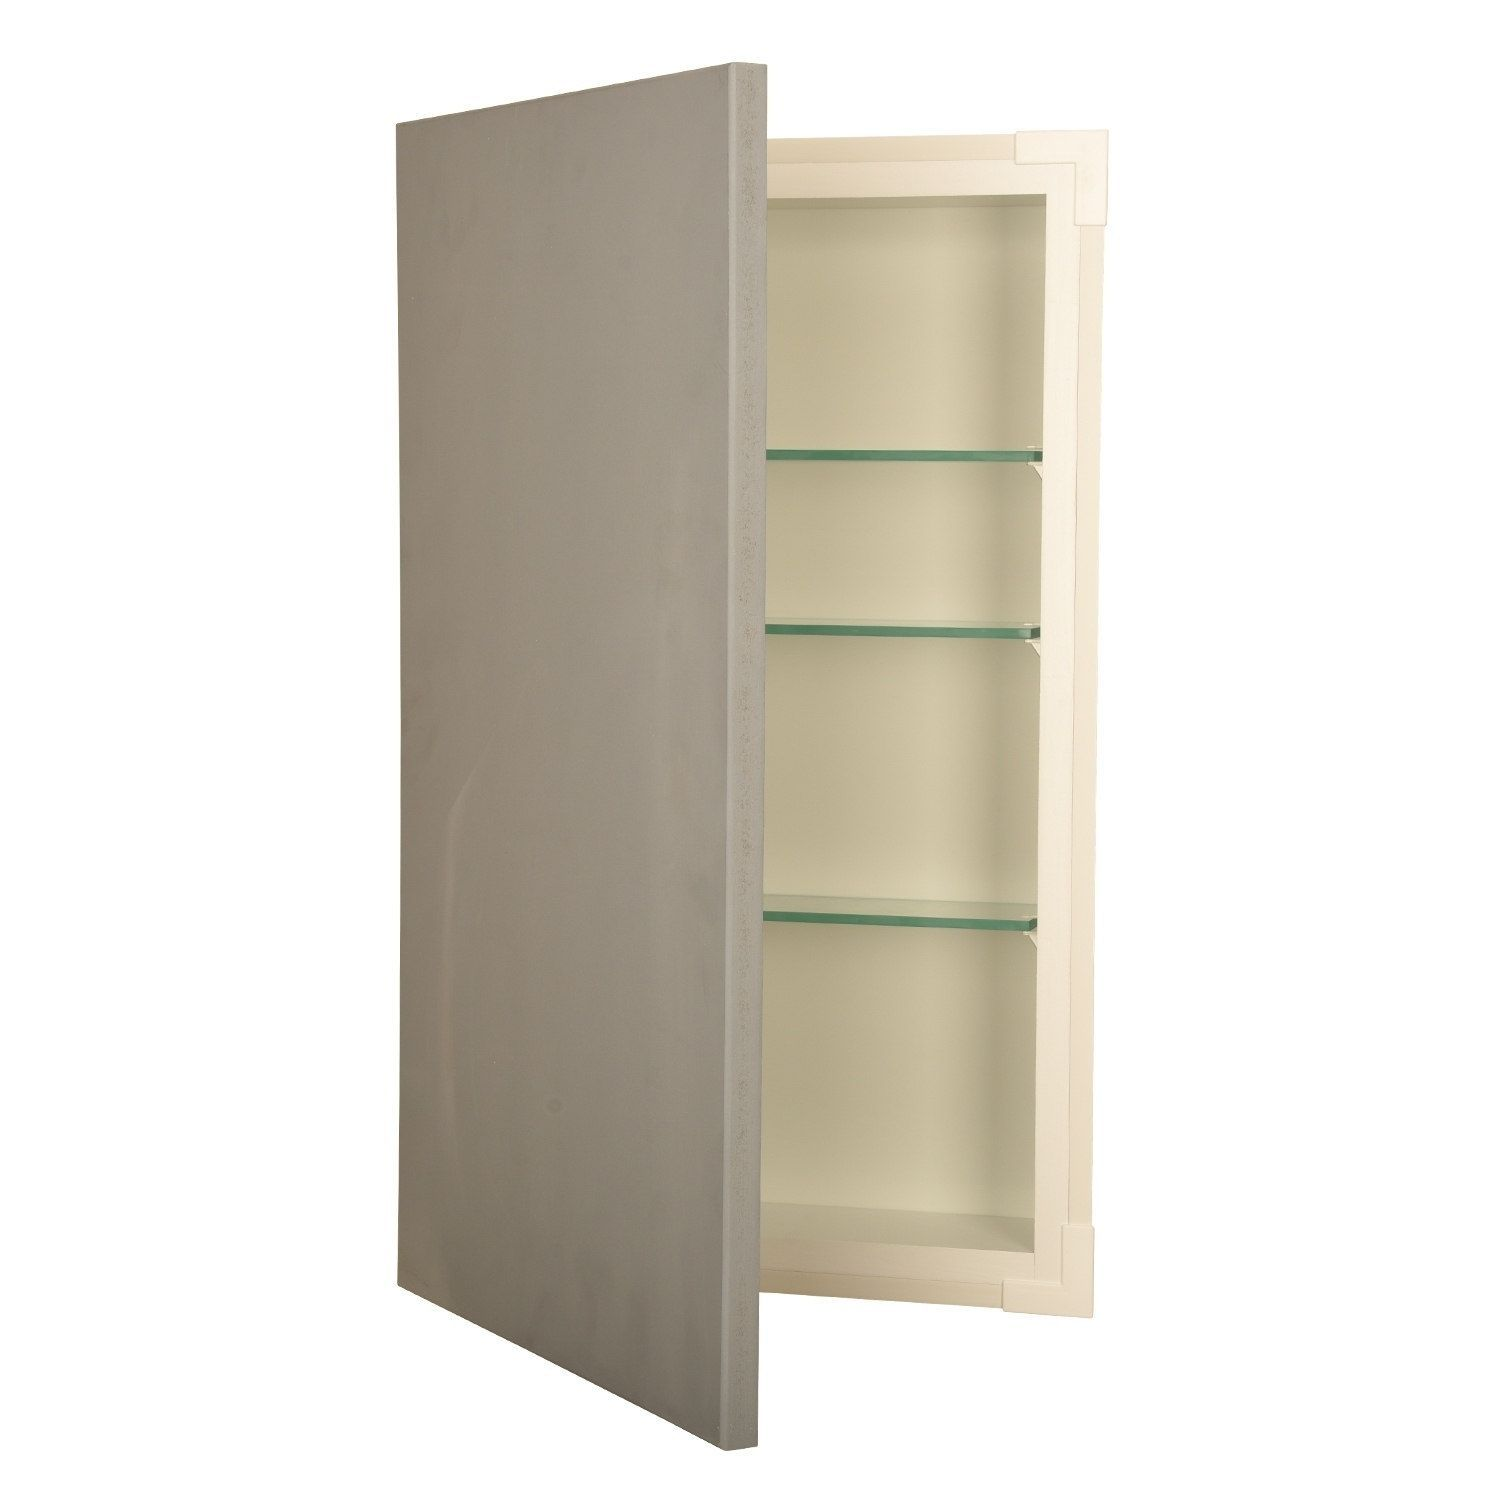 14x27 recessed disappearing frameless wall cabinet 7 25 deep